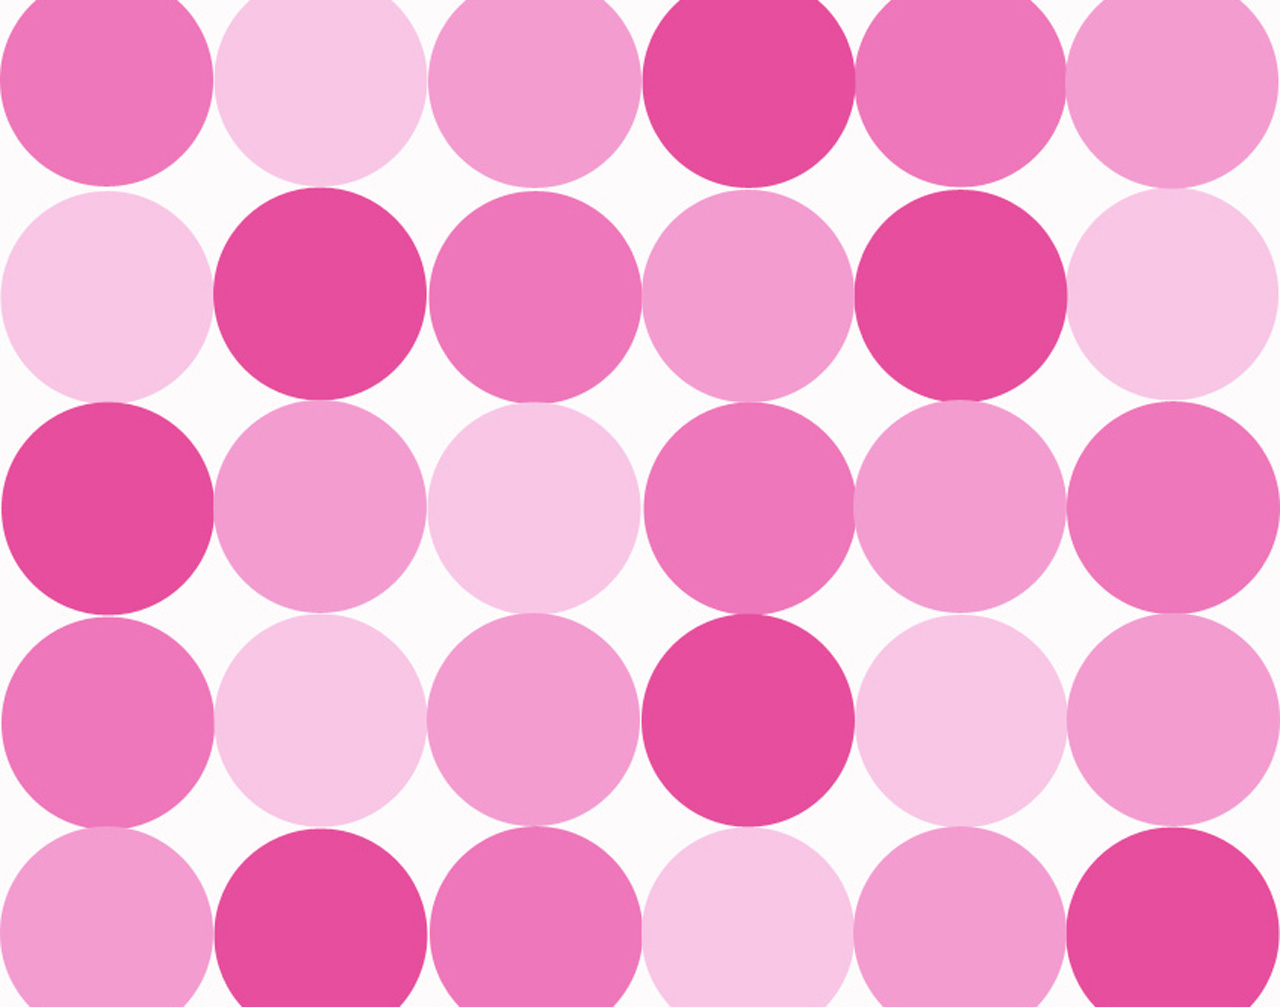 Pink polka dots clipart clipground clipart dots pink pink polka dot backgrounds voltagebd Choice Image